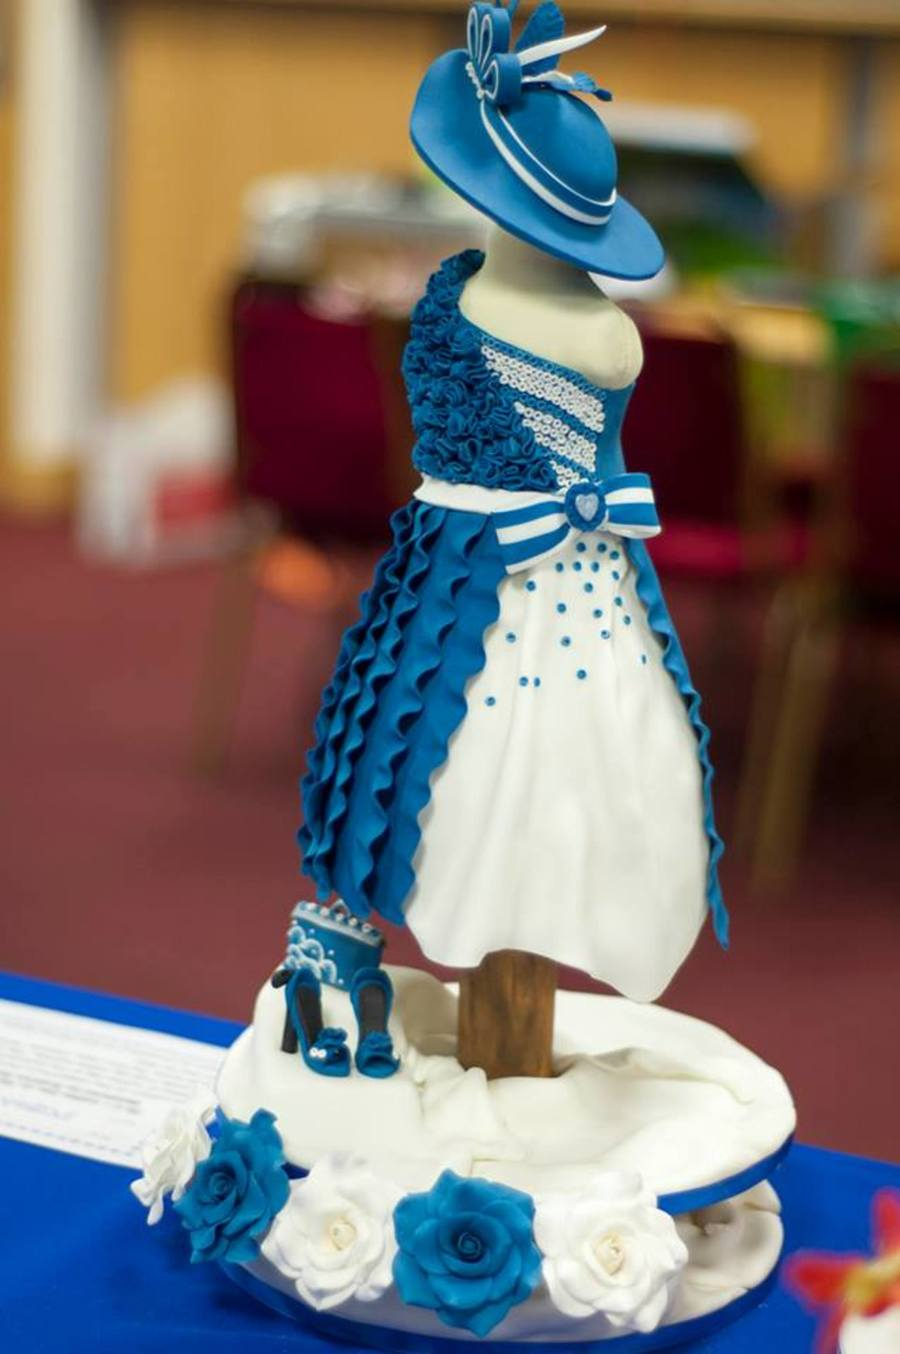 Dress And Hat Cake The Skirt Bit Of The Dress Is Cake And The Top Bit Is Rkt on Cake Central